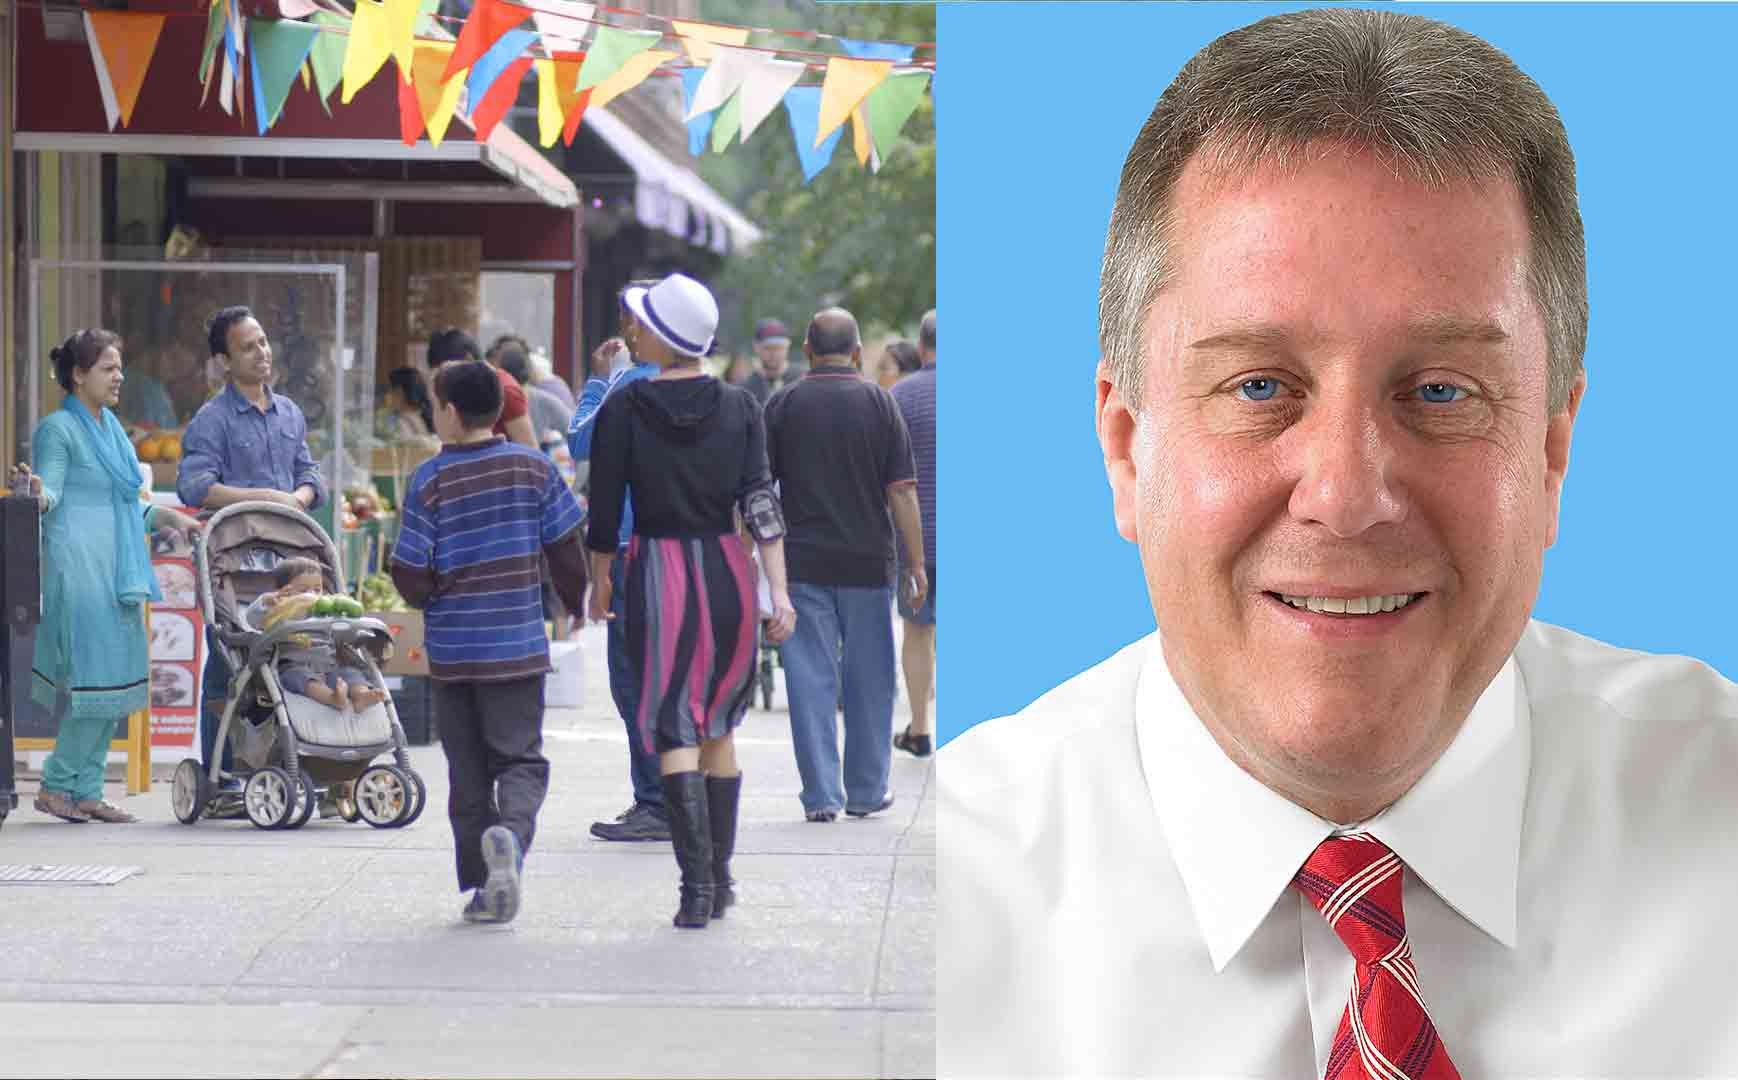 IN JACKSON HEIGHTS introduced by NYC Council Member Daniel Dromm